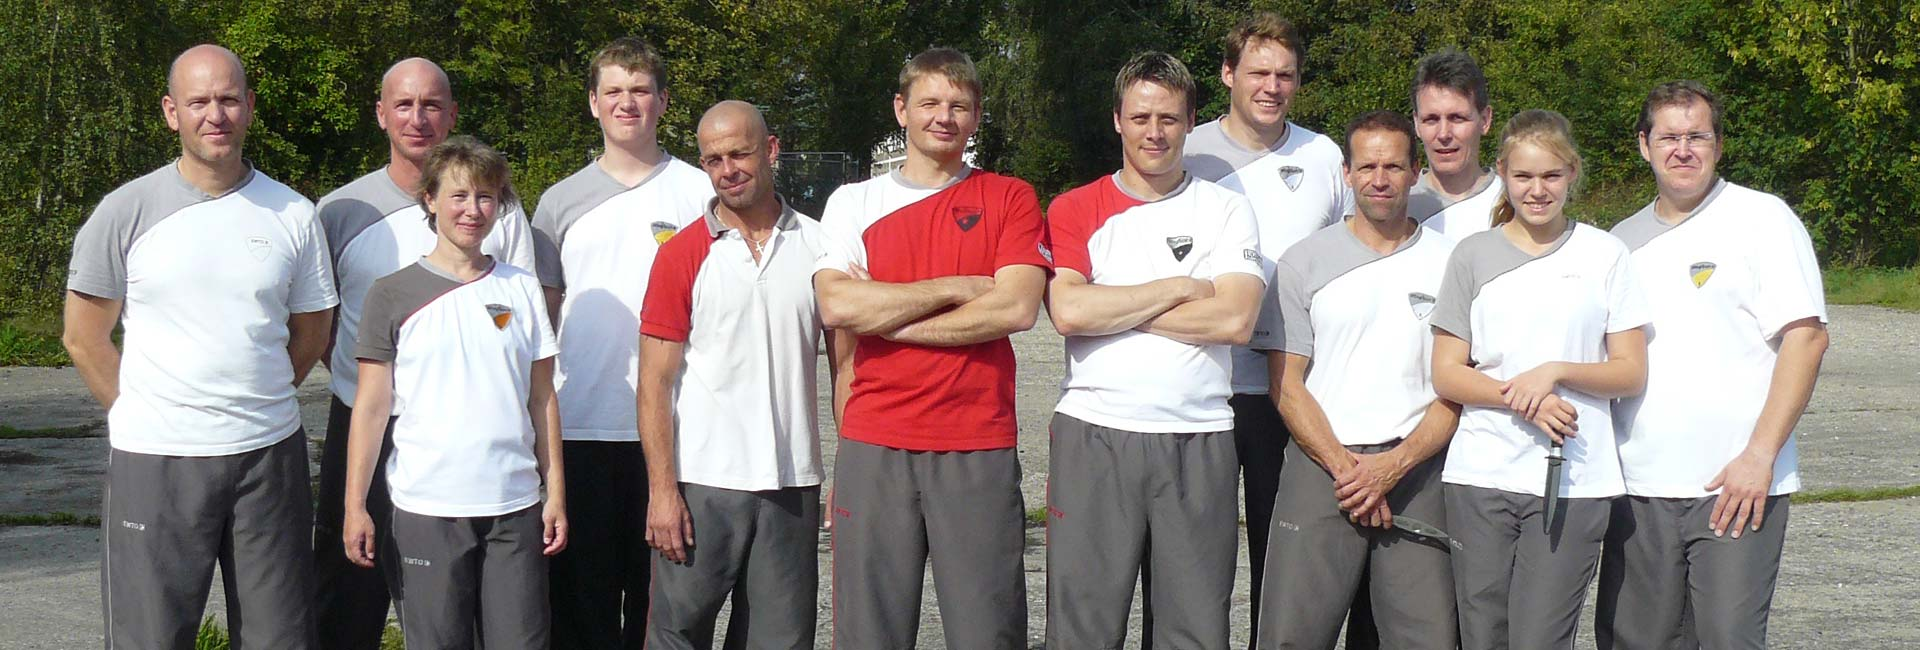 WingTsun Kleingruppe in Bad Oldesloe